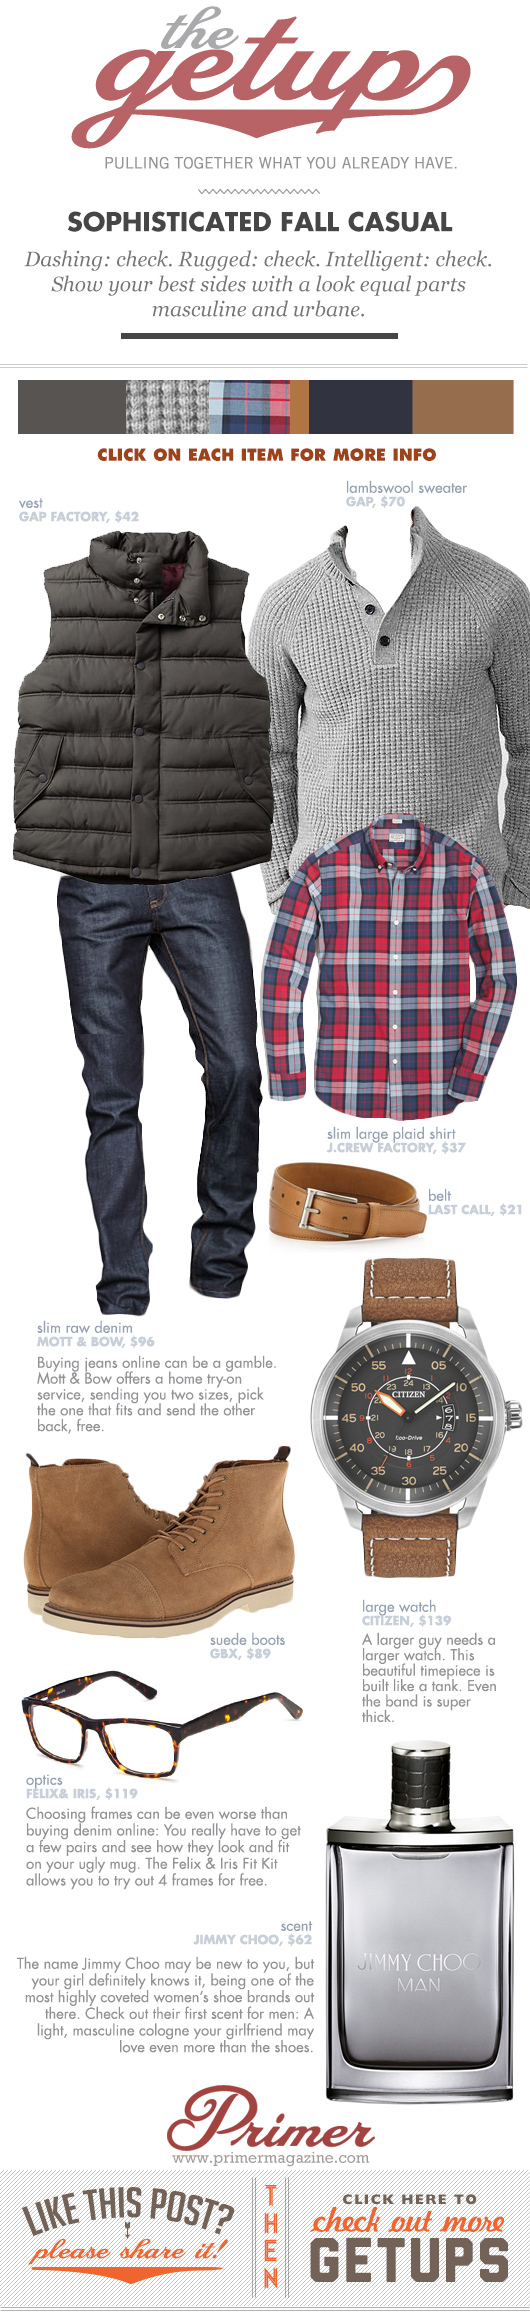 Getup Sophisticated Fall Casual - Sweater and vest with plaid shirt and jeans